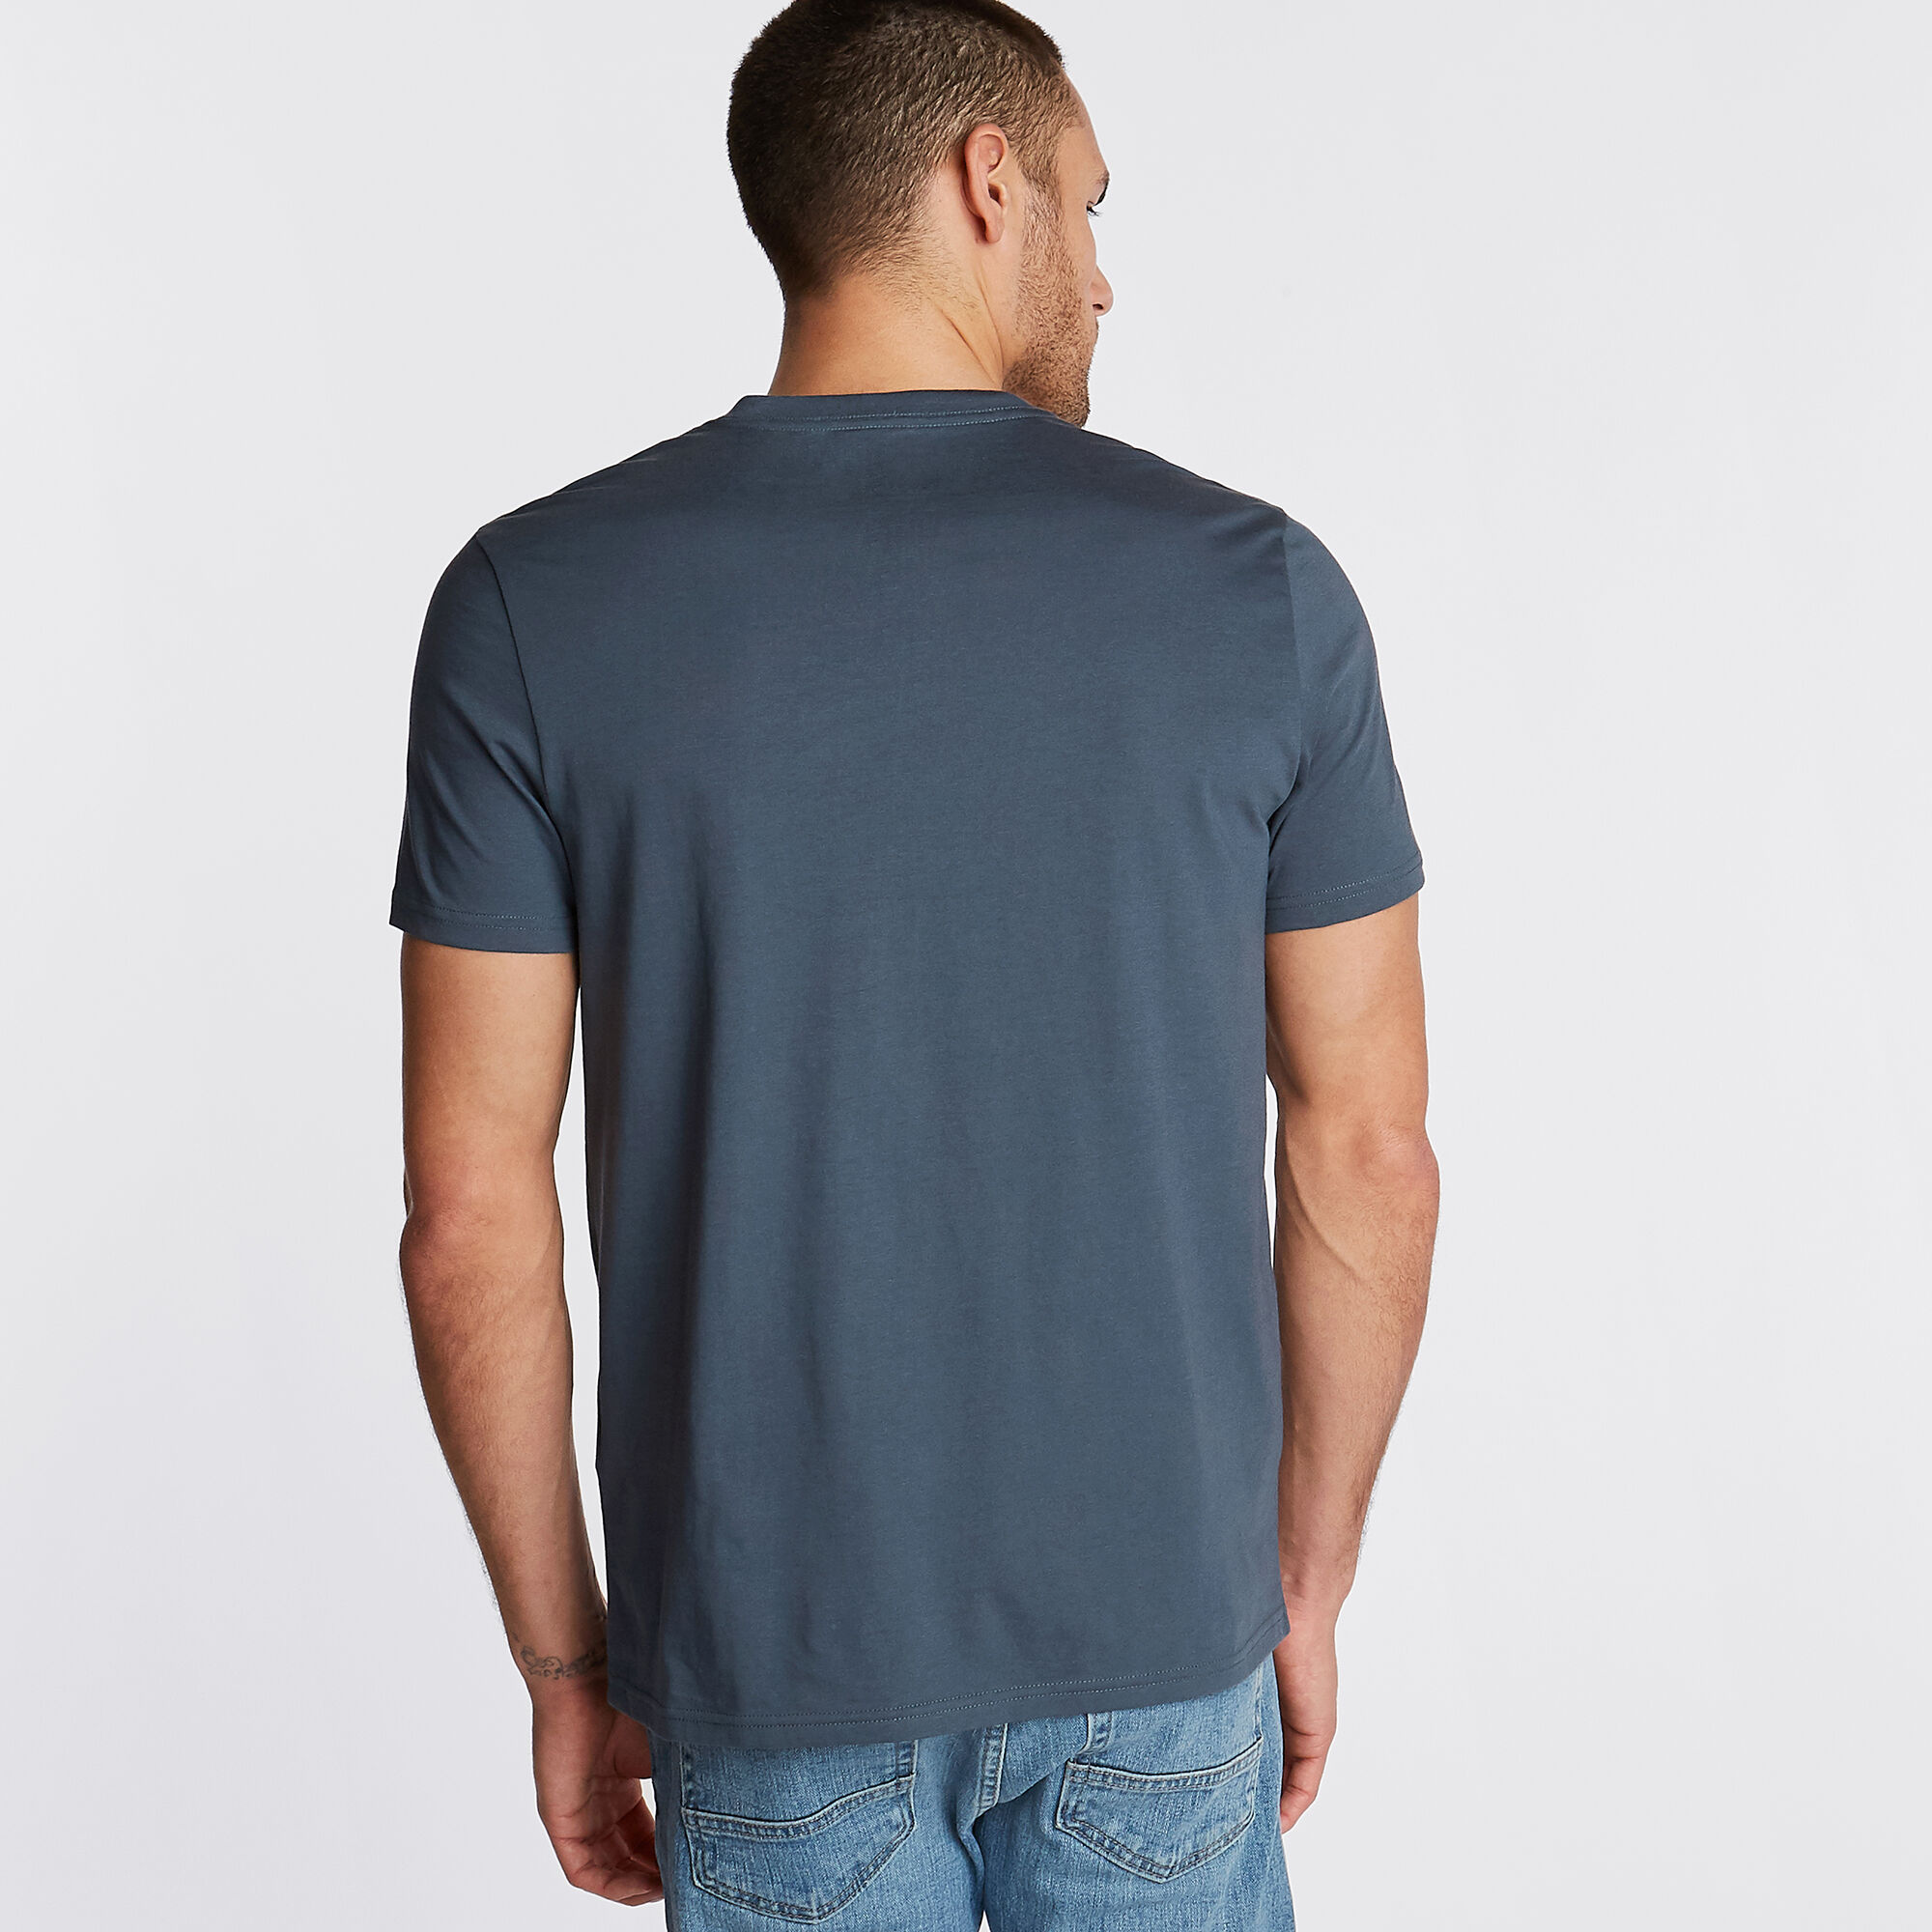 Nautica-Mens-V-Neck-Short-Sleeve-T-Shirt thumbnail 56